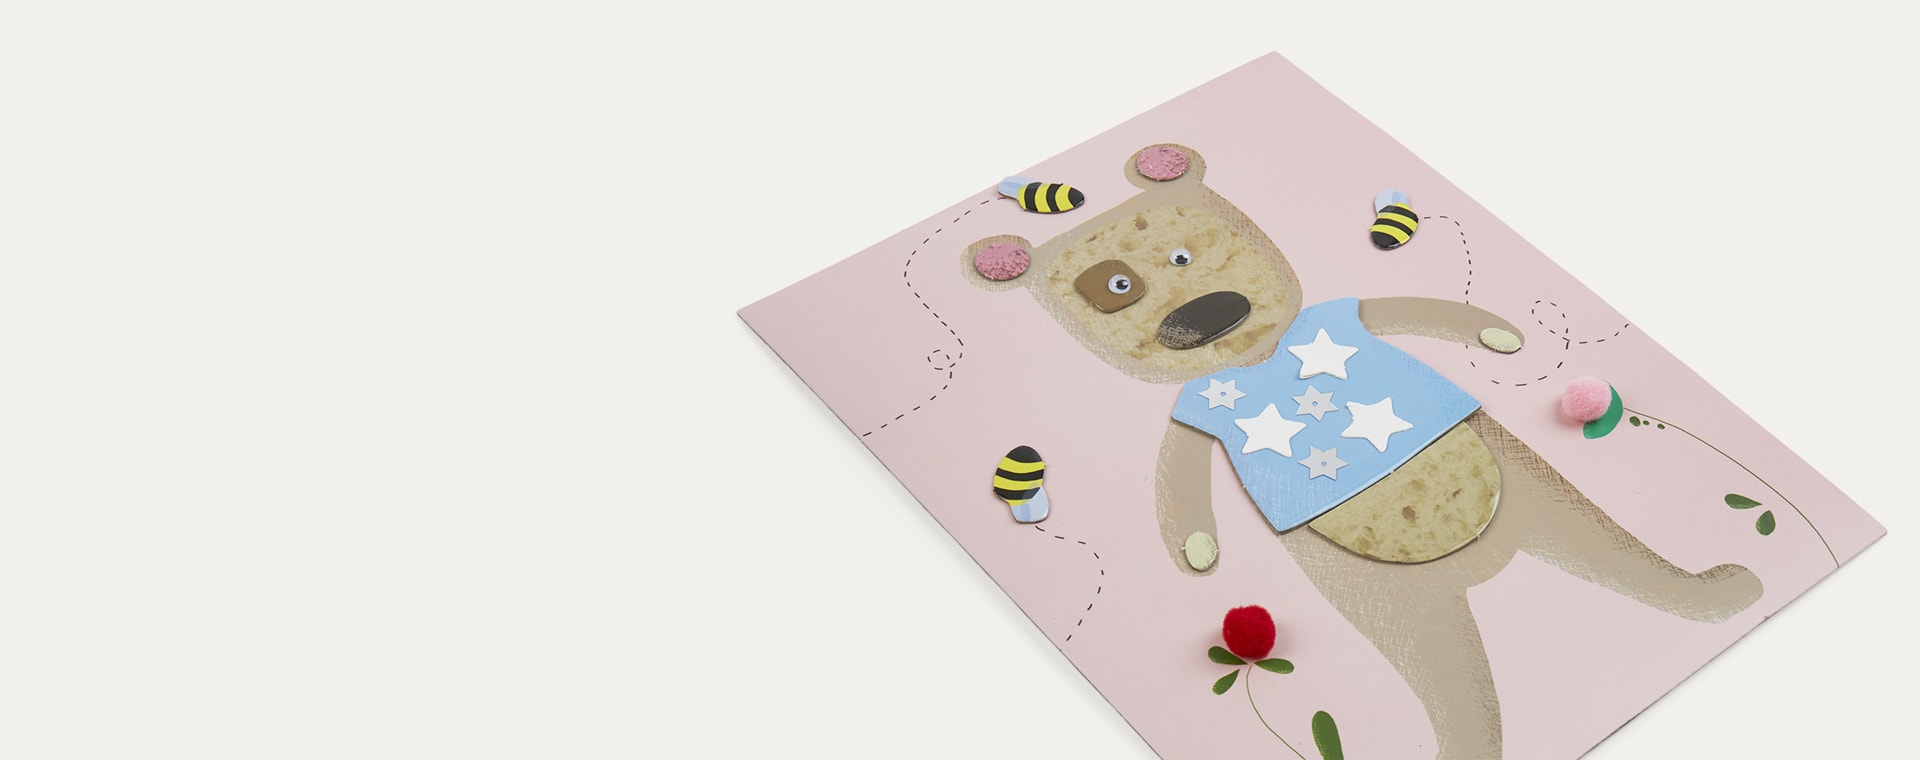 Multi Djeco Collages For Little Ones